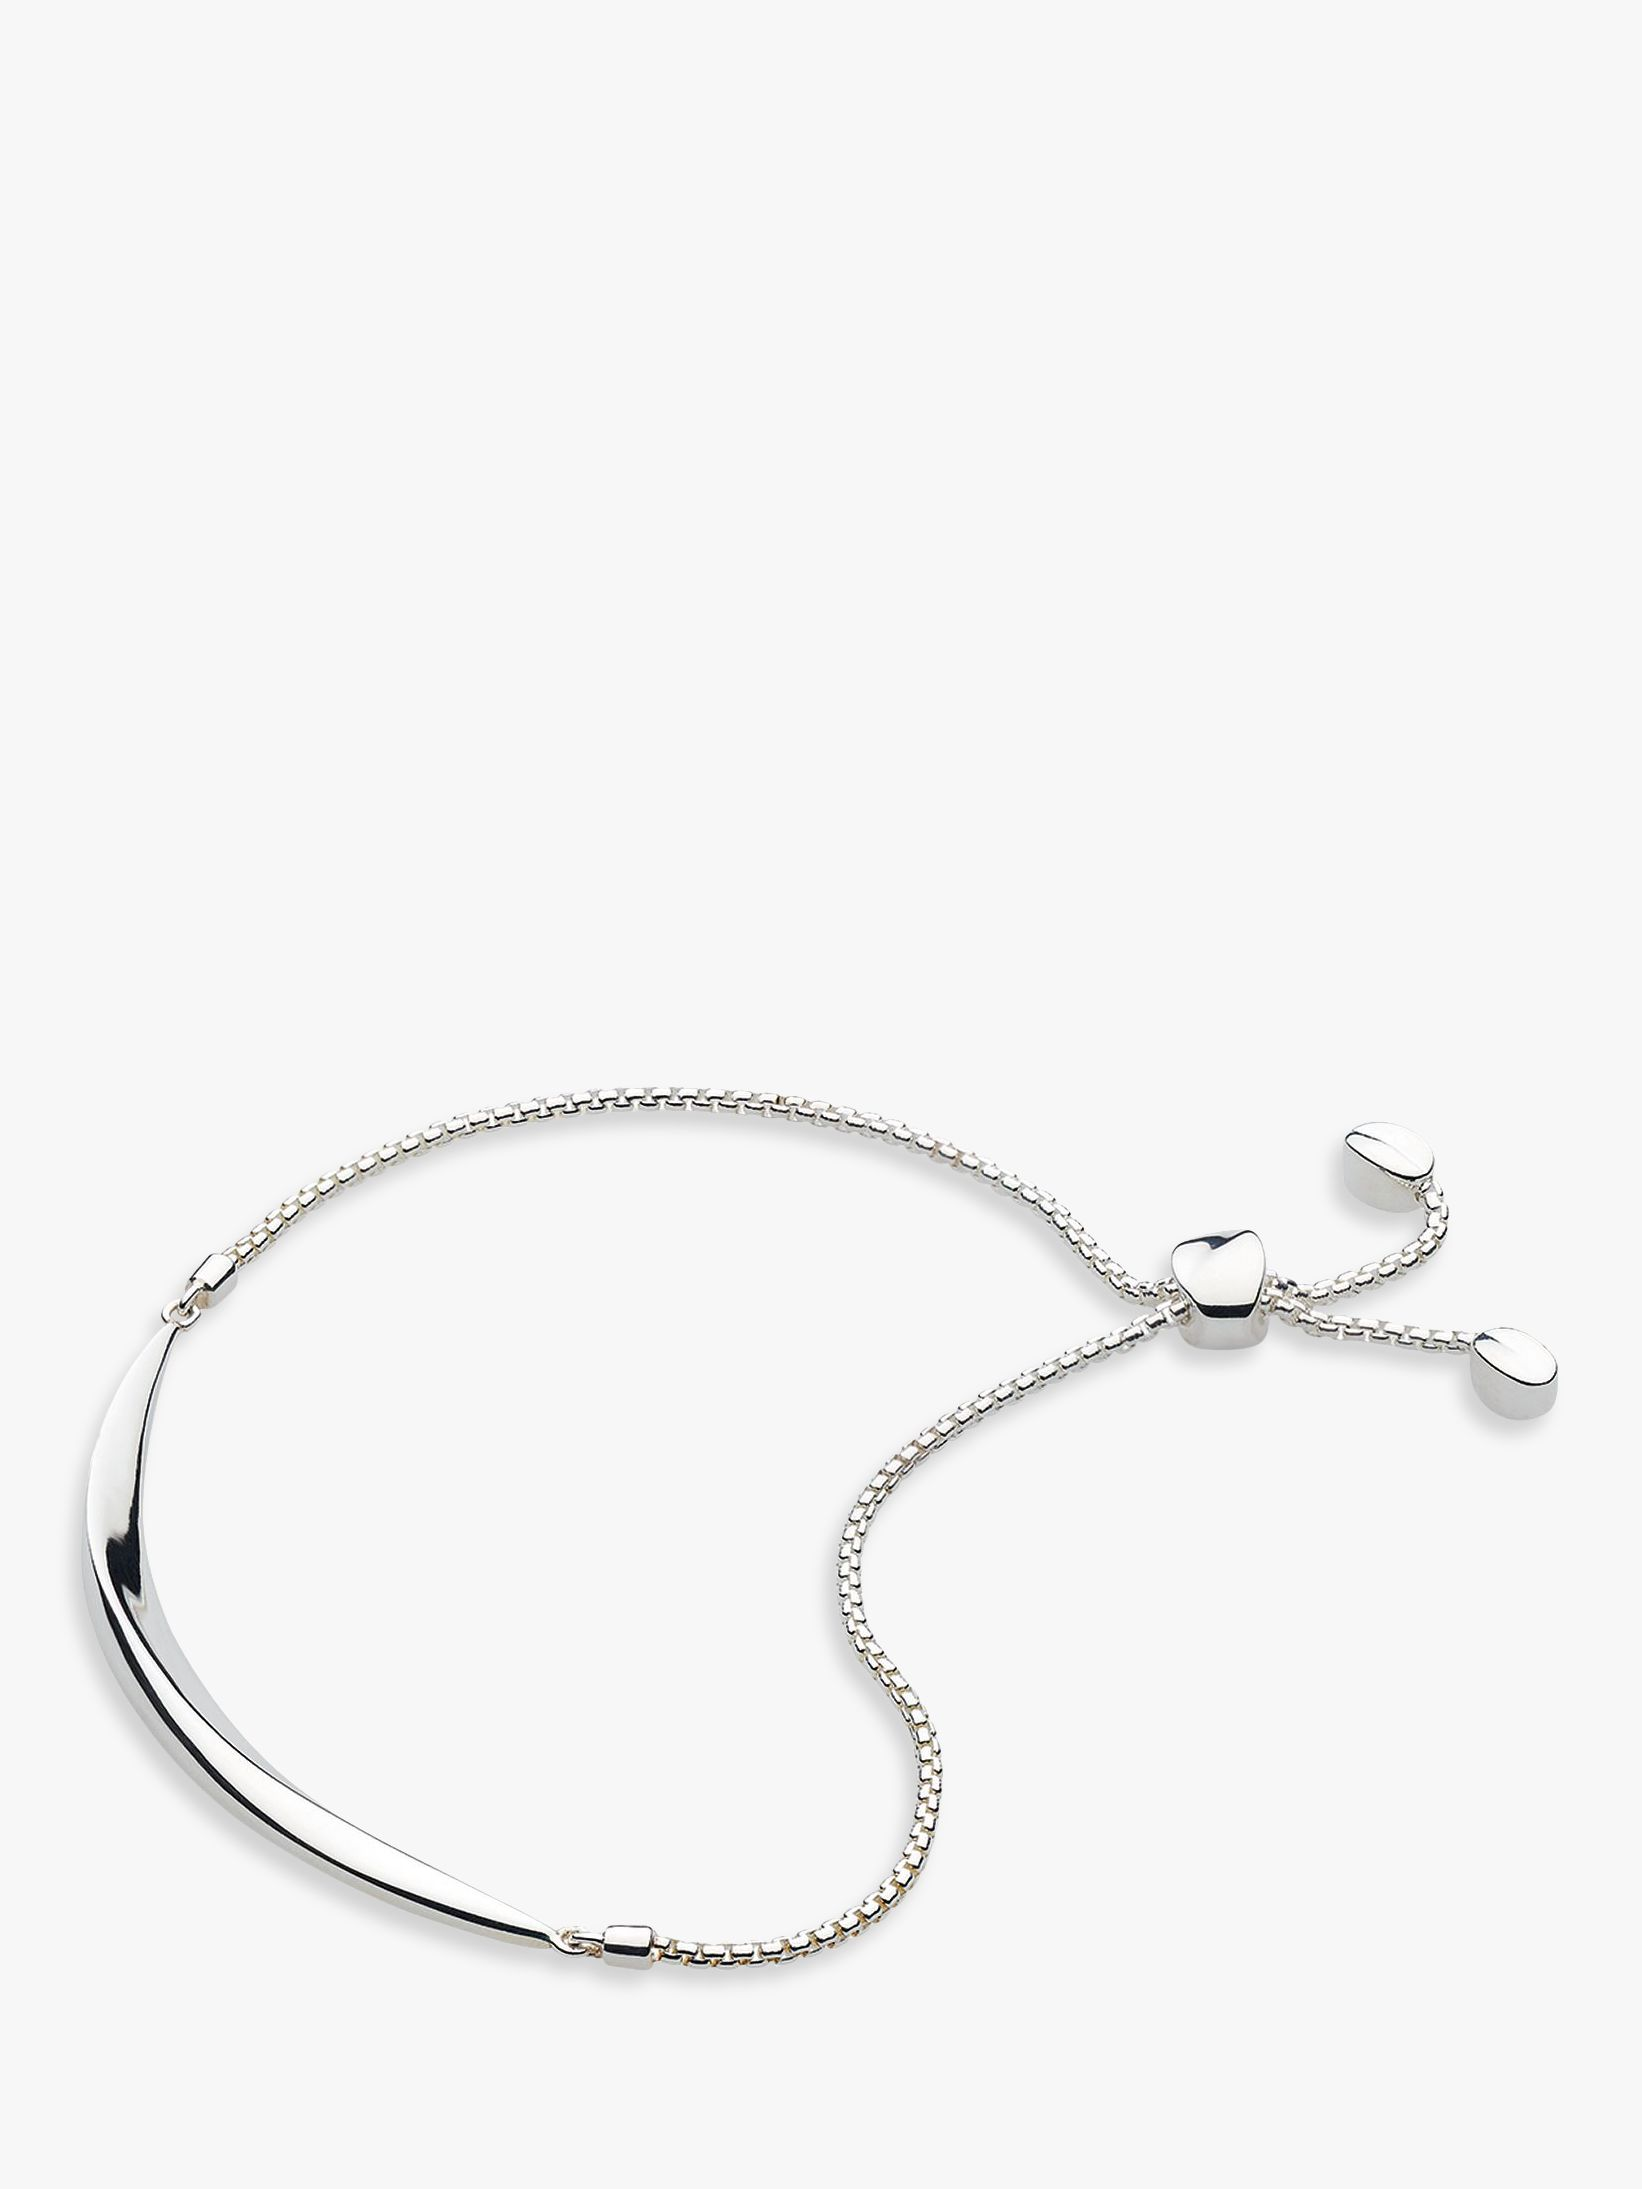 Kit Heath Kit Heath Bevel Curve Bar Toggle Bracelet, Silver